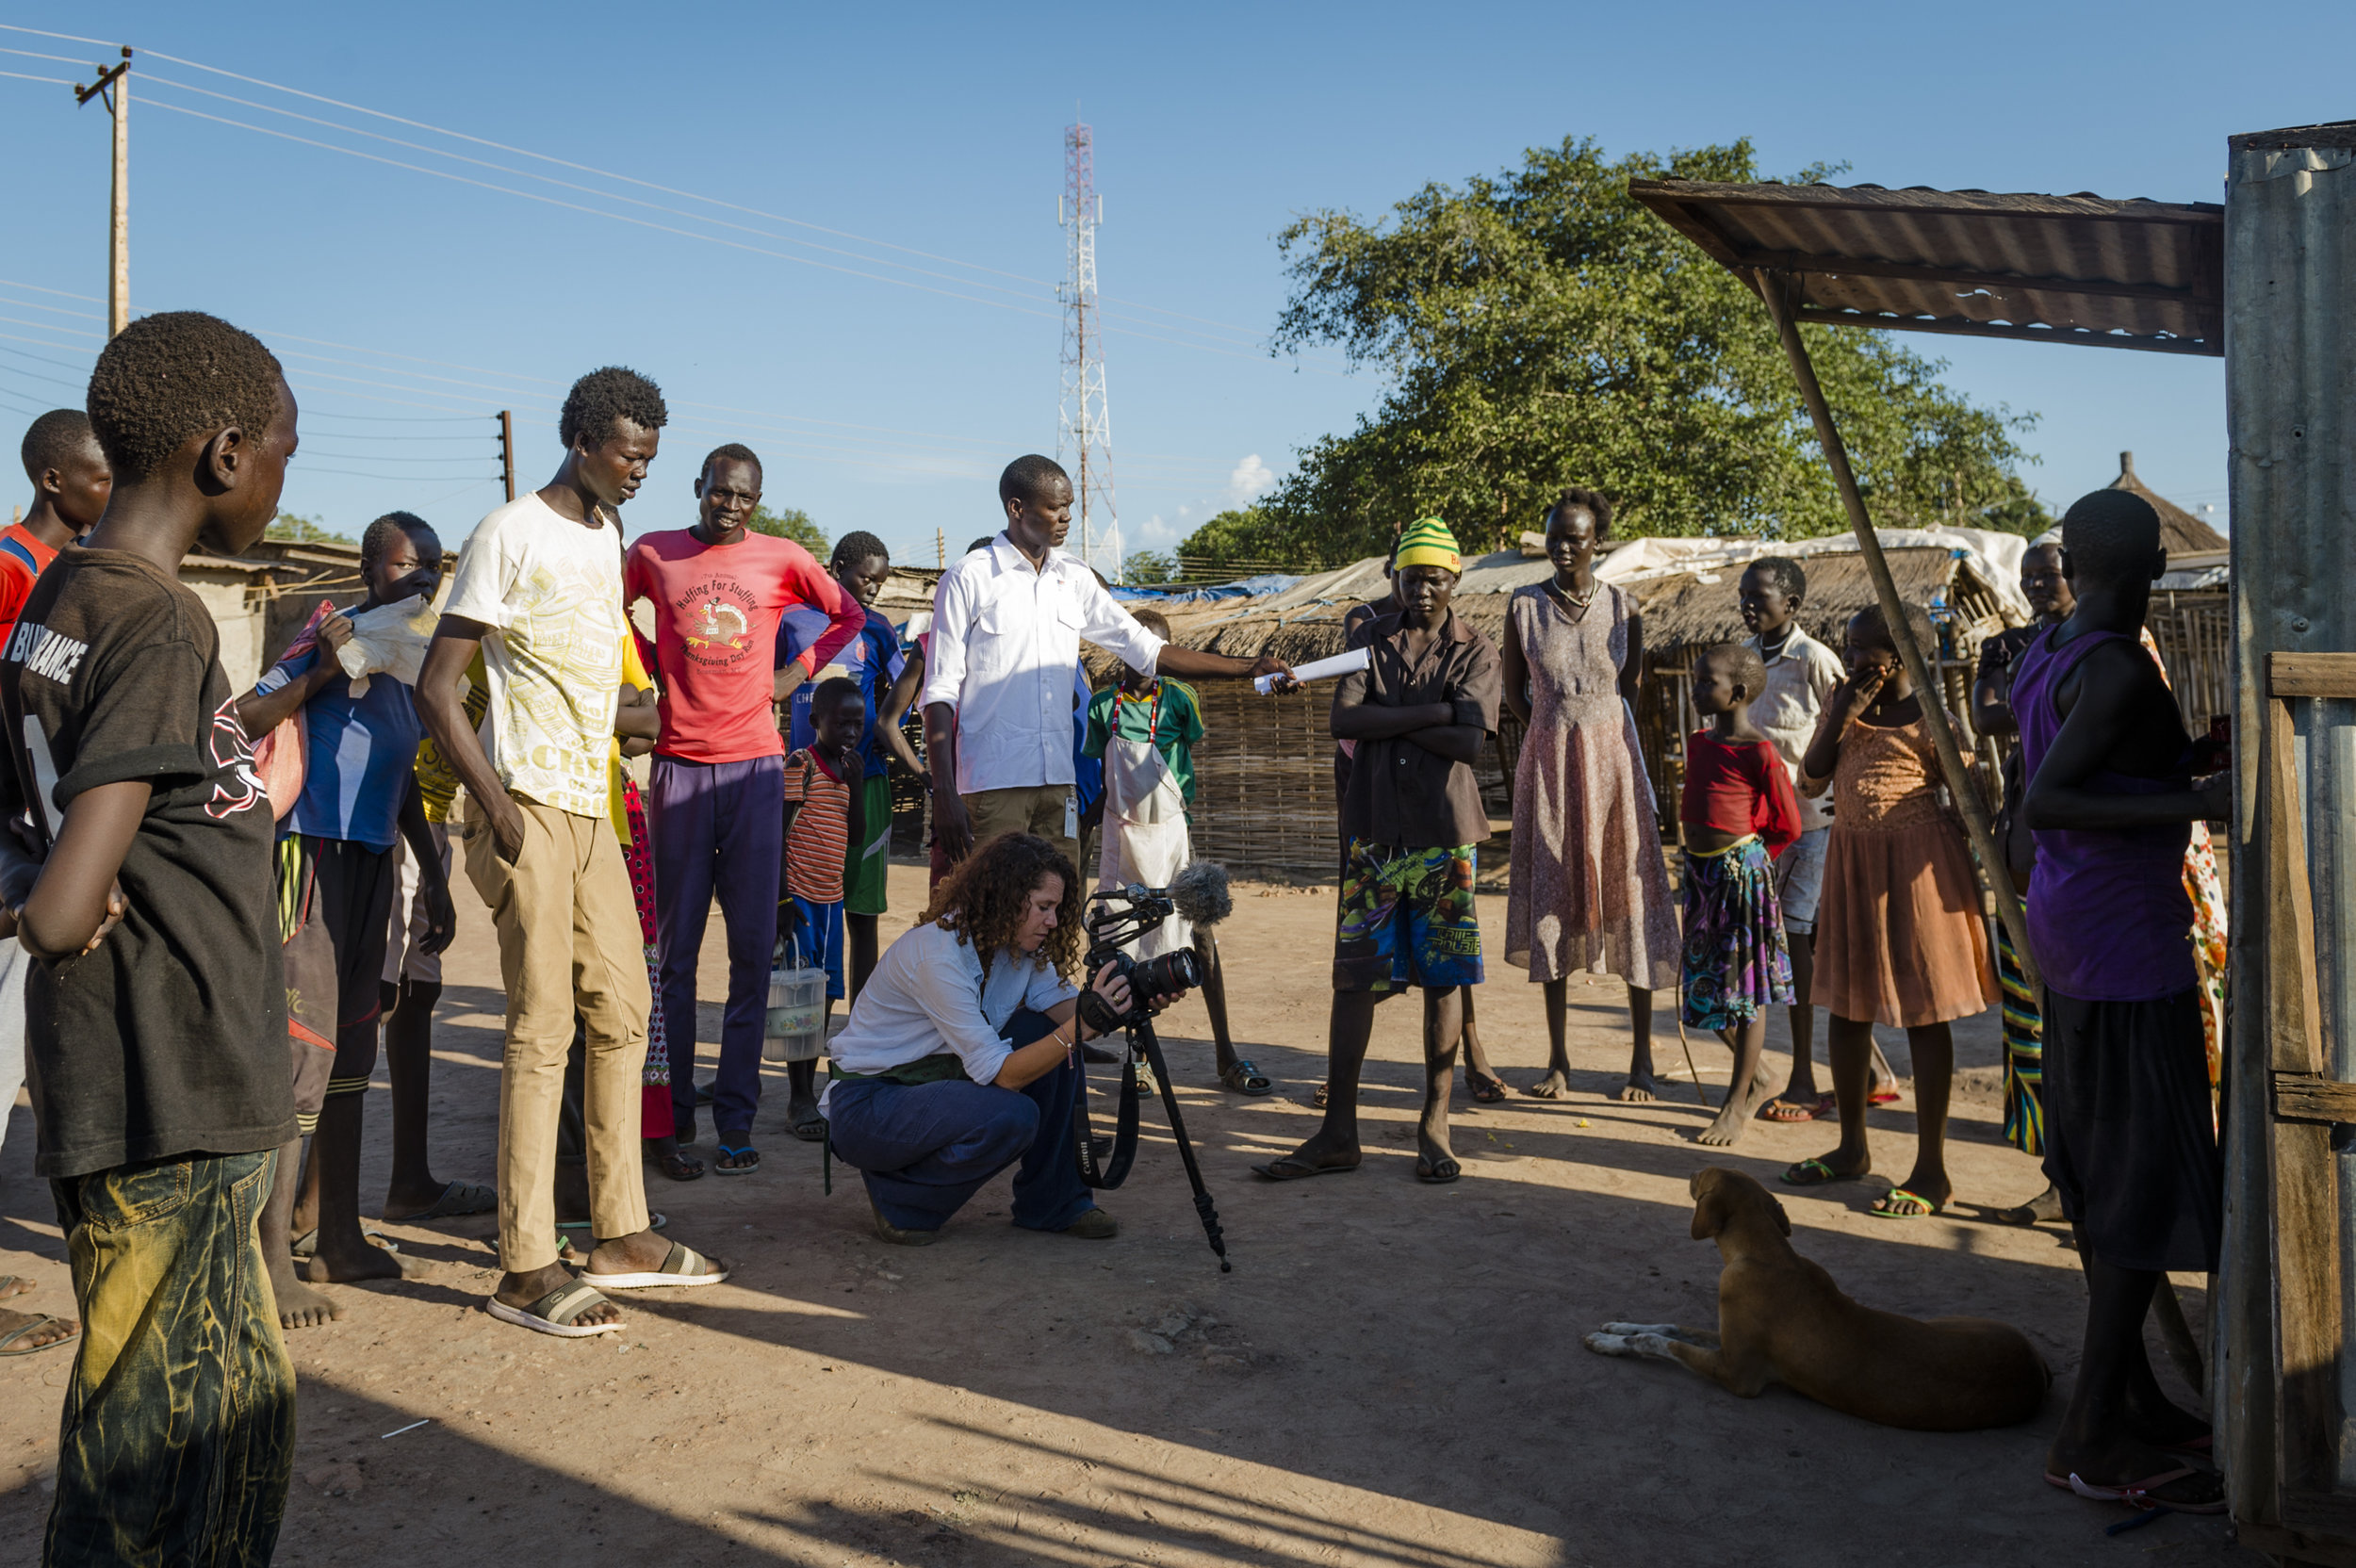 That's a wrap…! - Final day of filming in Rumbek documenting @MottMacDonald 'Water for Lakes' programme. Since 2013 720 boreholes & 20 water yards have been constructed or rehabilitated, providing sustainable access to safe drinking water for around 200,000 people in the Greater Lakes State of South Sudan.